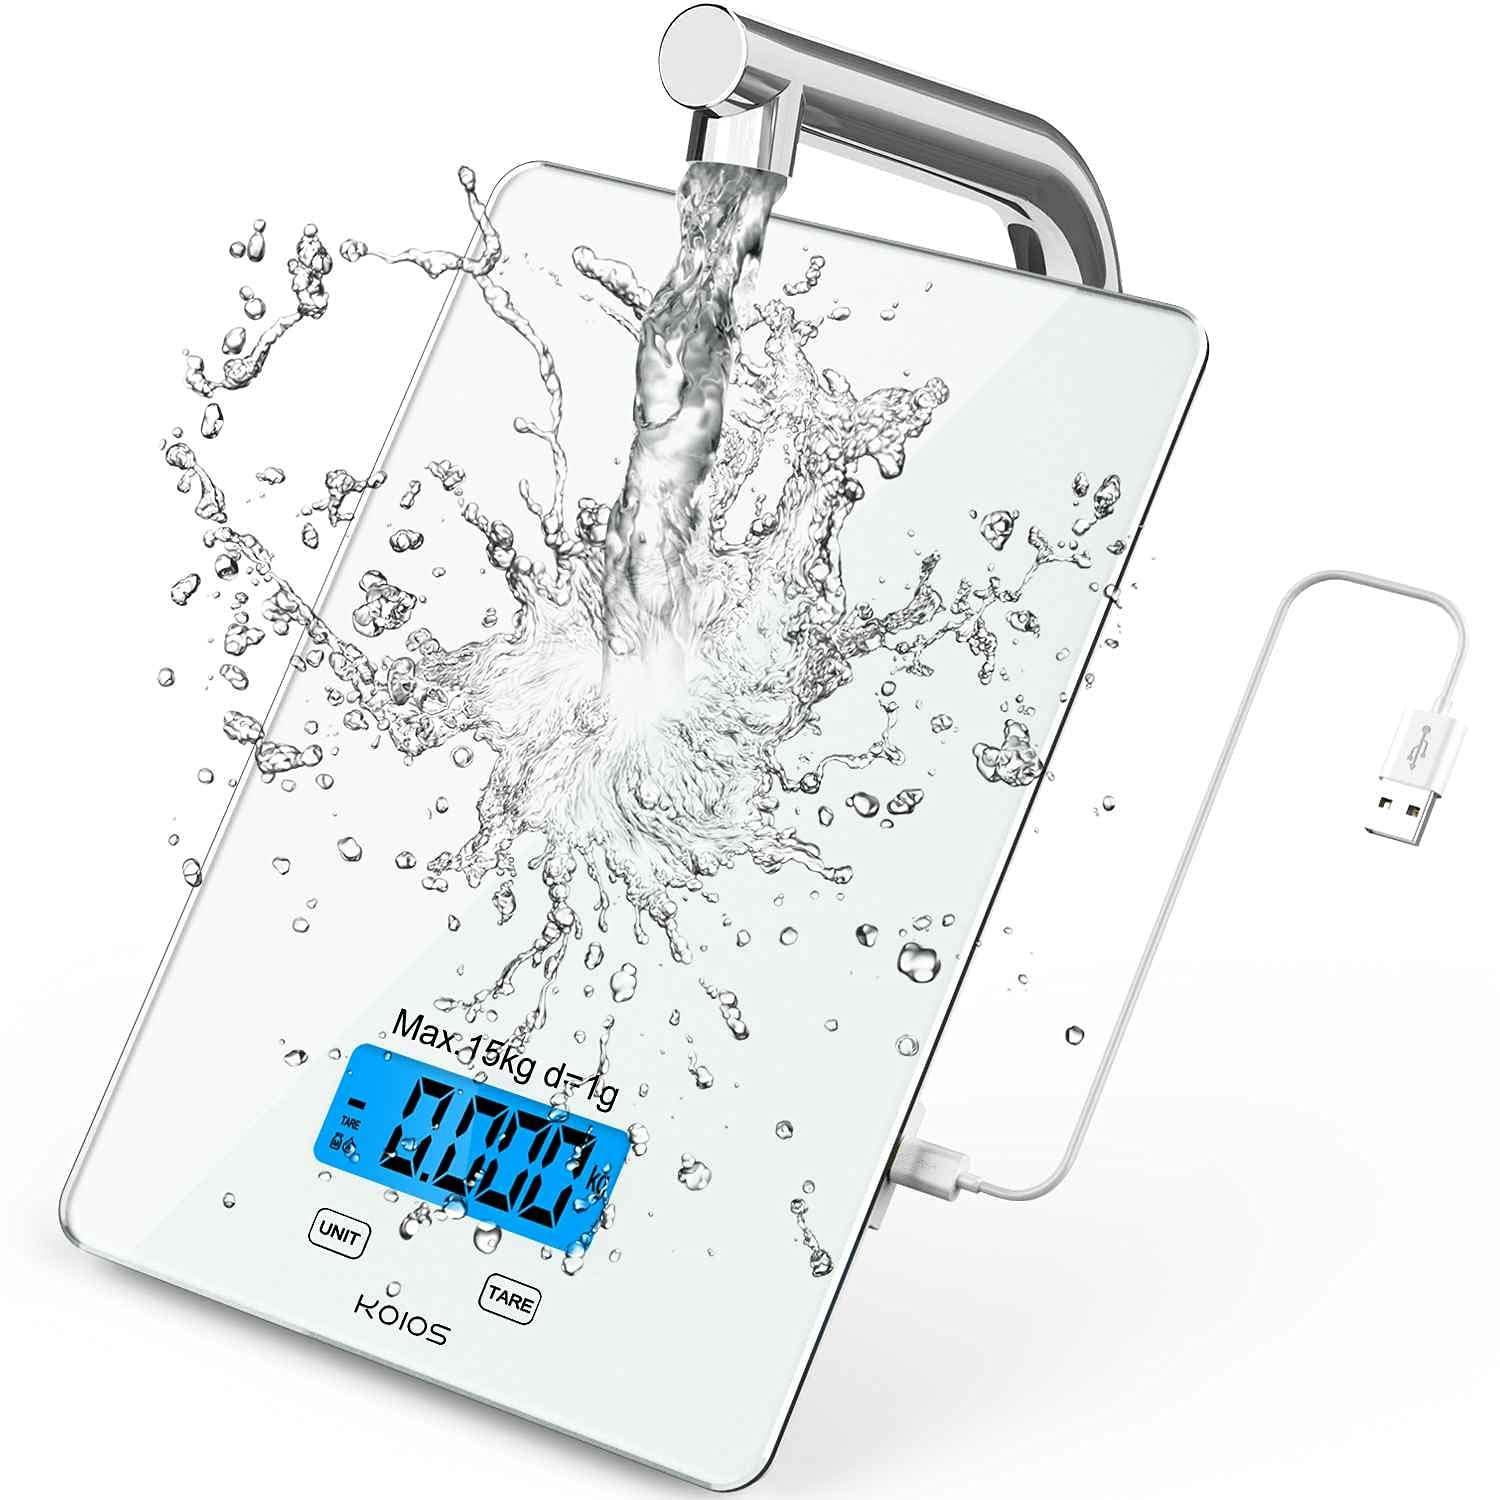 KOIOS Kitchen Scale, 33lb/15Kg Food Scales Digital Weight Grams and oz for Cooking Baking, 1g/0.1oz Precise Graduation, Waterproof Tempered Glass, USB Rechargeable, 6 Weight Units, Tare Function